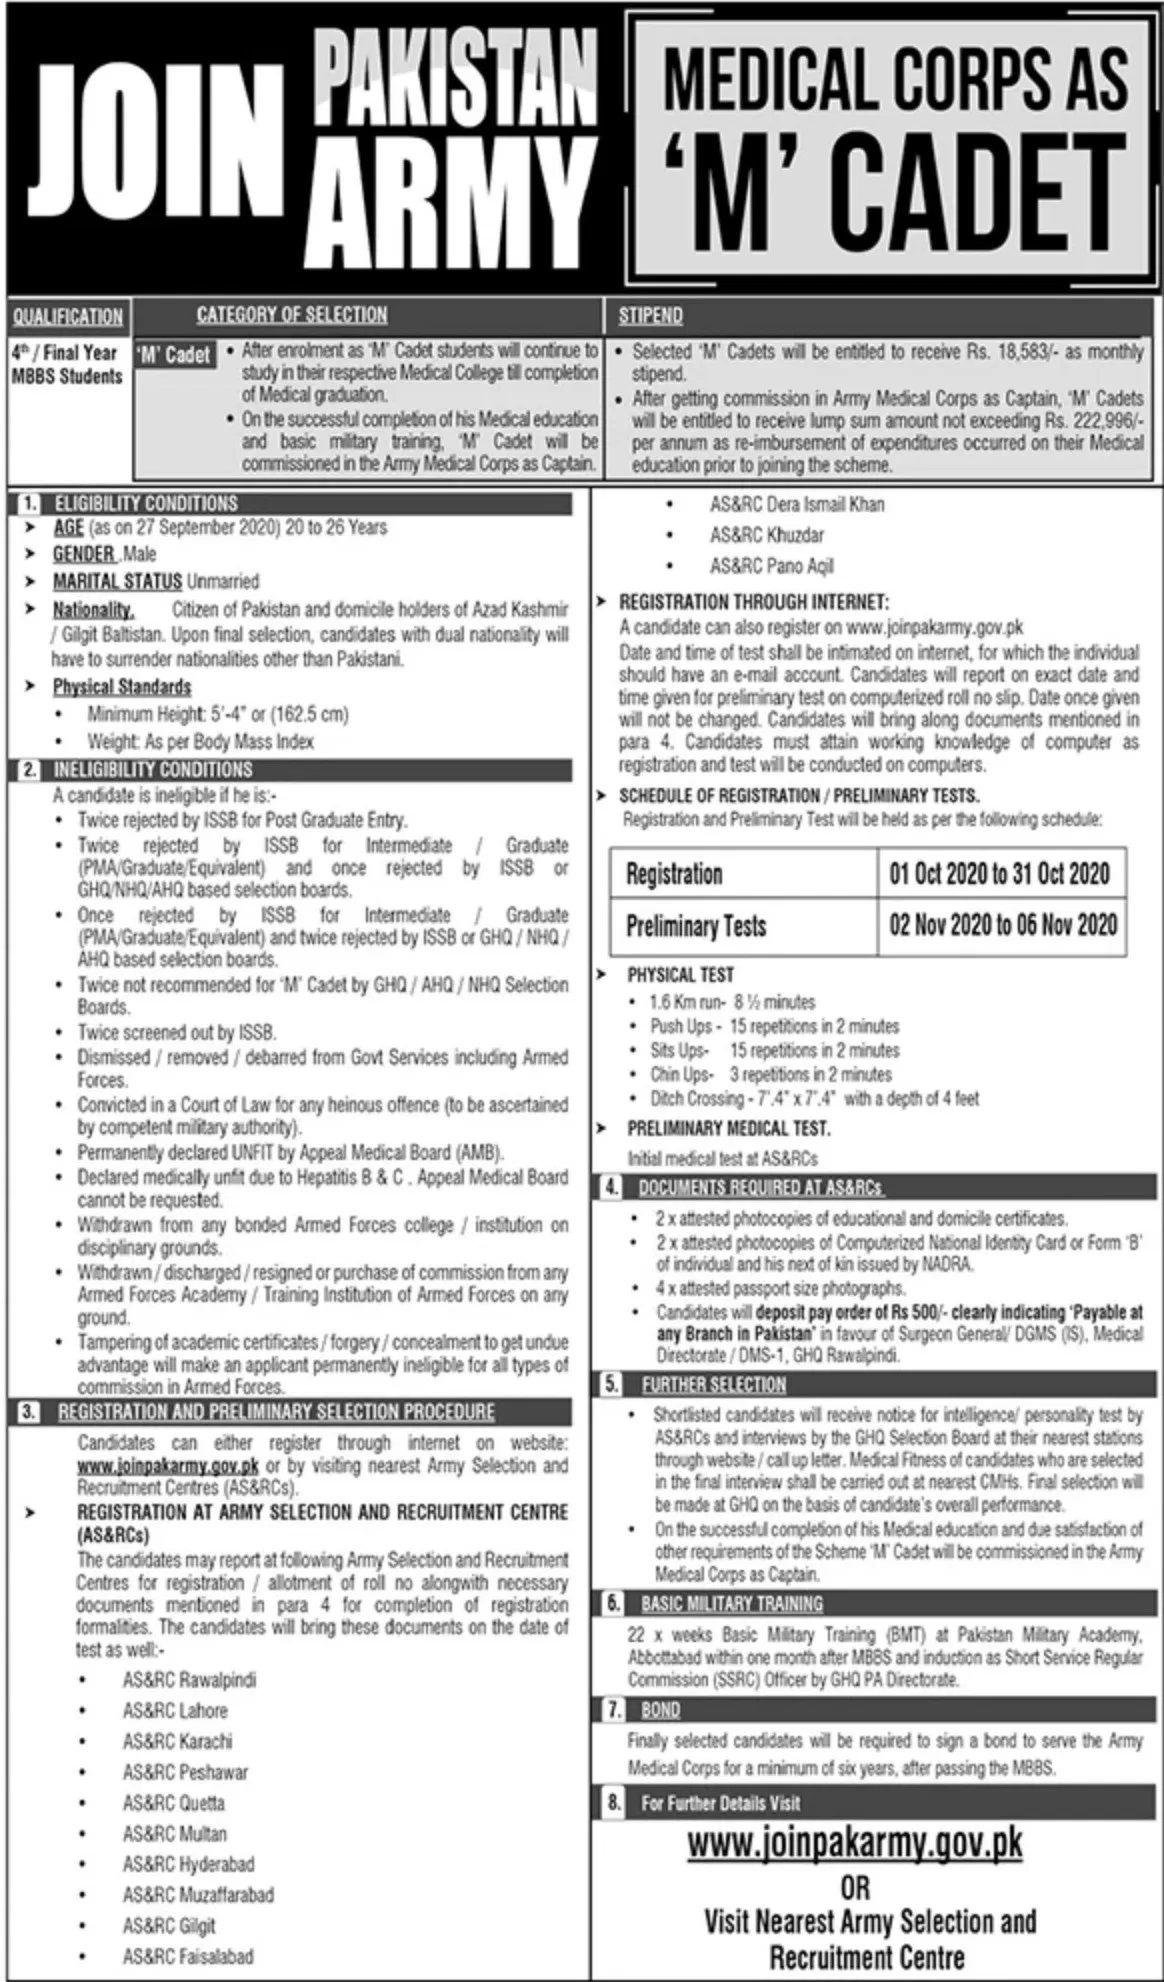 Pak Army Medical Corps As M Cadet Jobs Advertisement